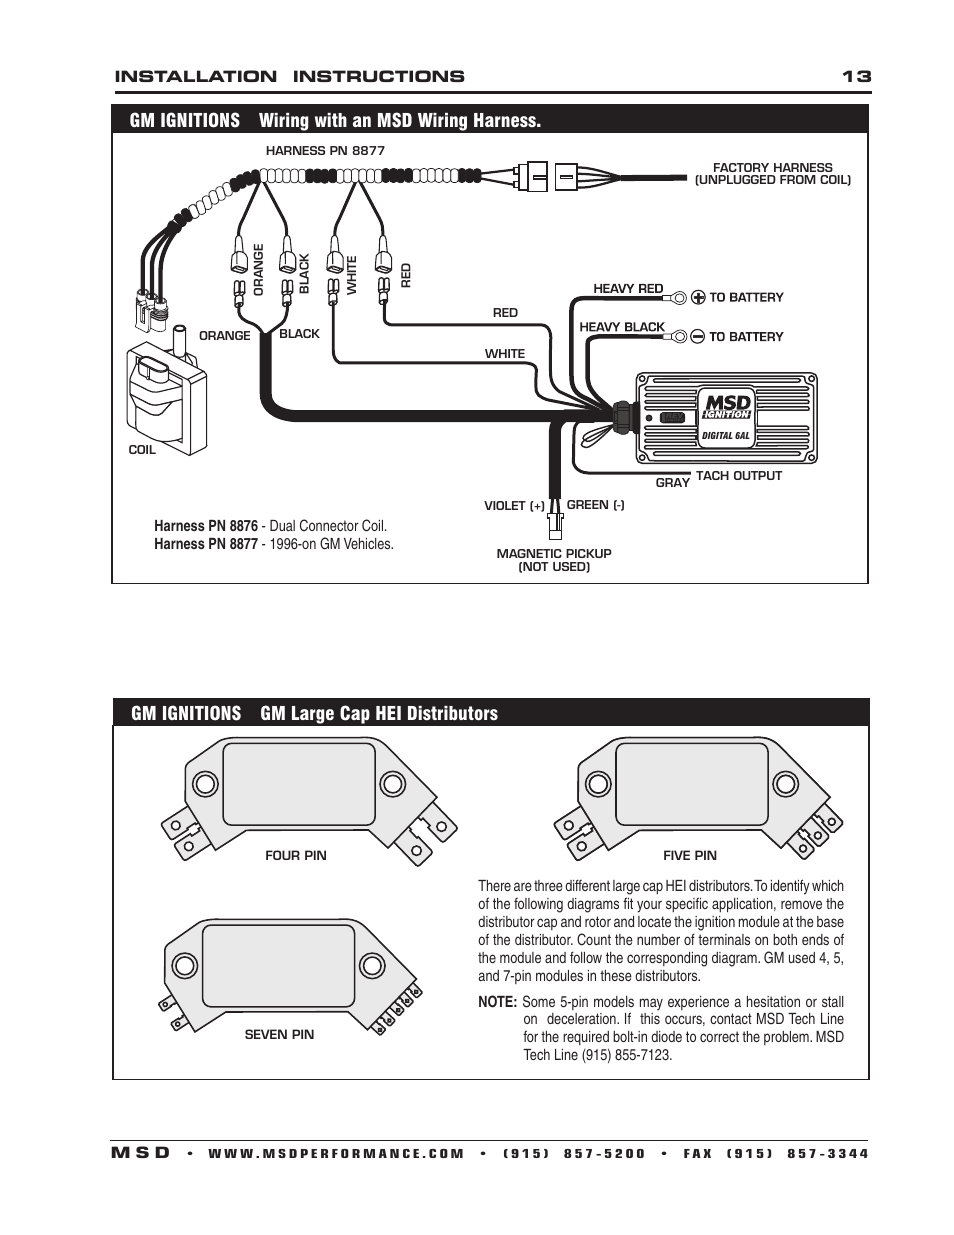 Jacobs Ignition Wiring Diagram 30 Images 8680 Msd Hei Digital 7 Plus 6201 6a Control Page13resize